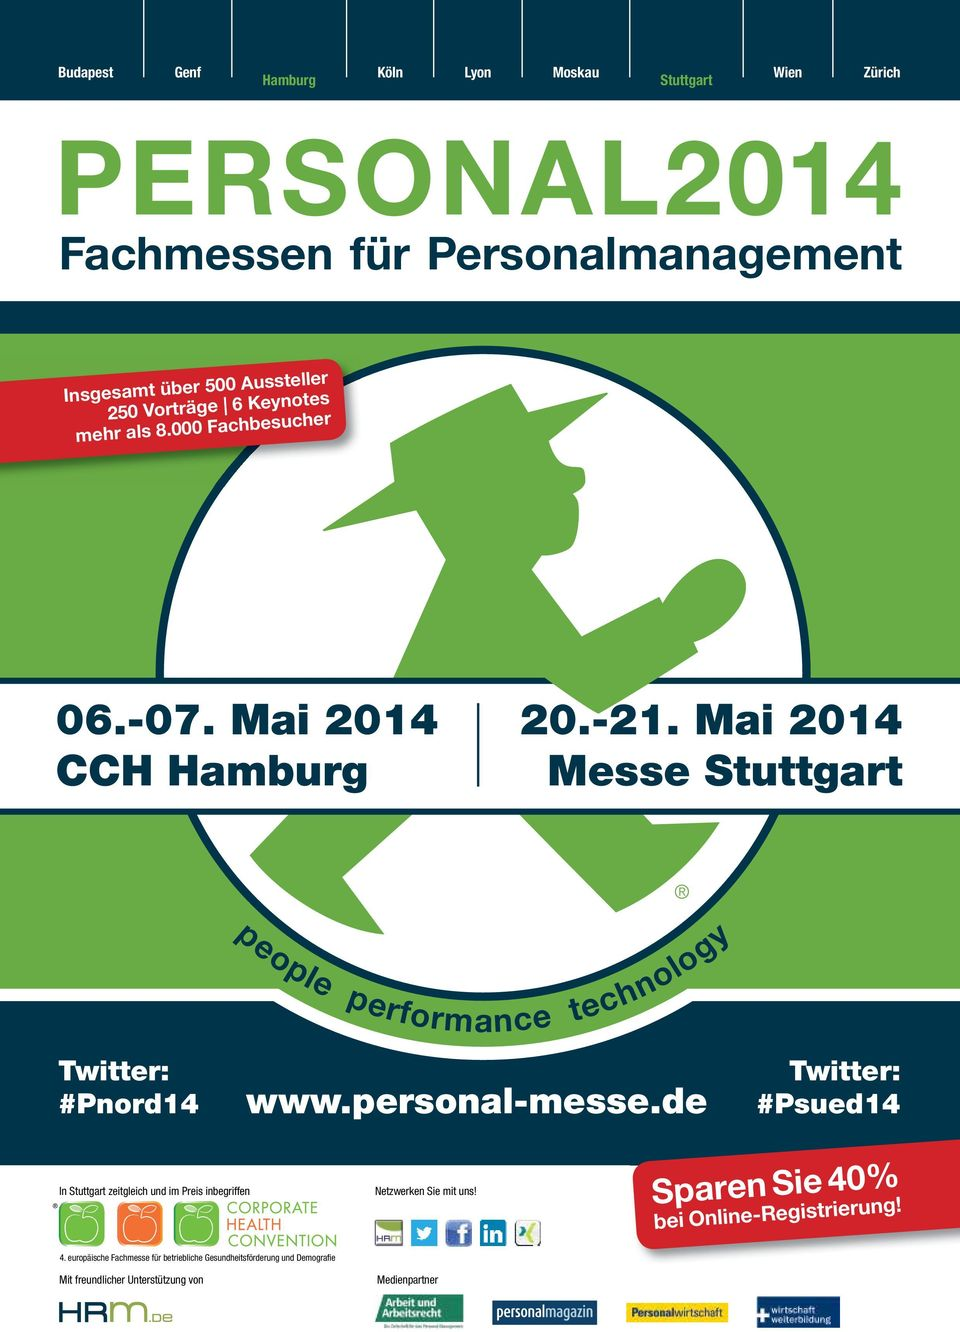 Mai 2014 Messe Stuttgart people performance technology Twitter: Twitter: #Pnord14 www.personal-messe.